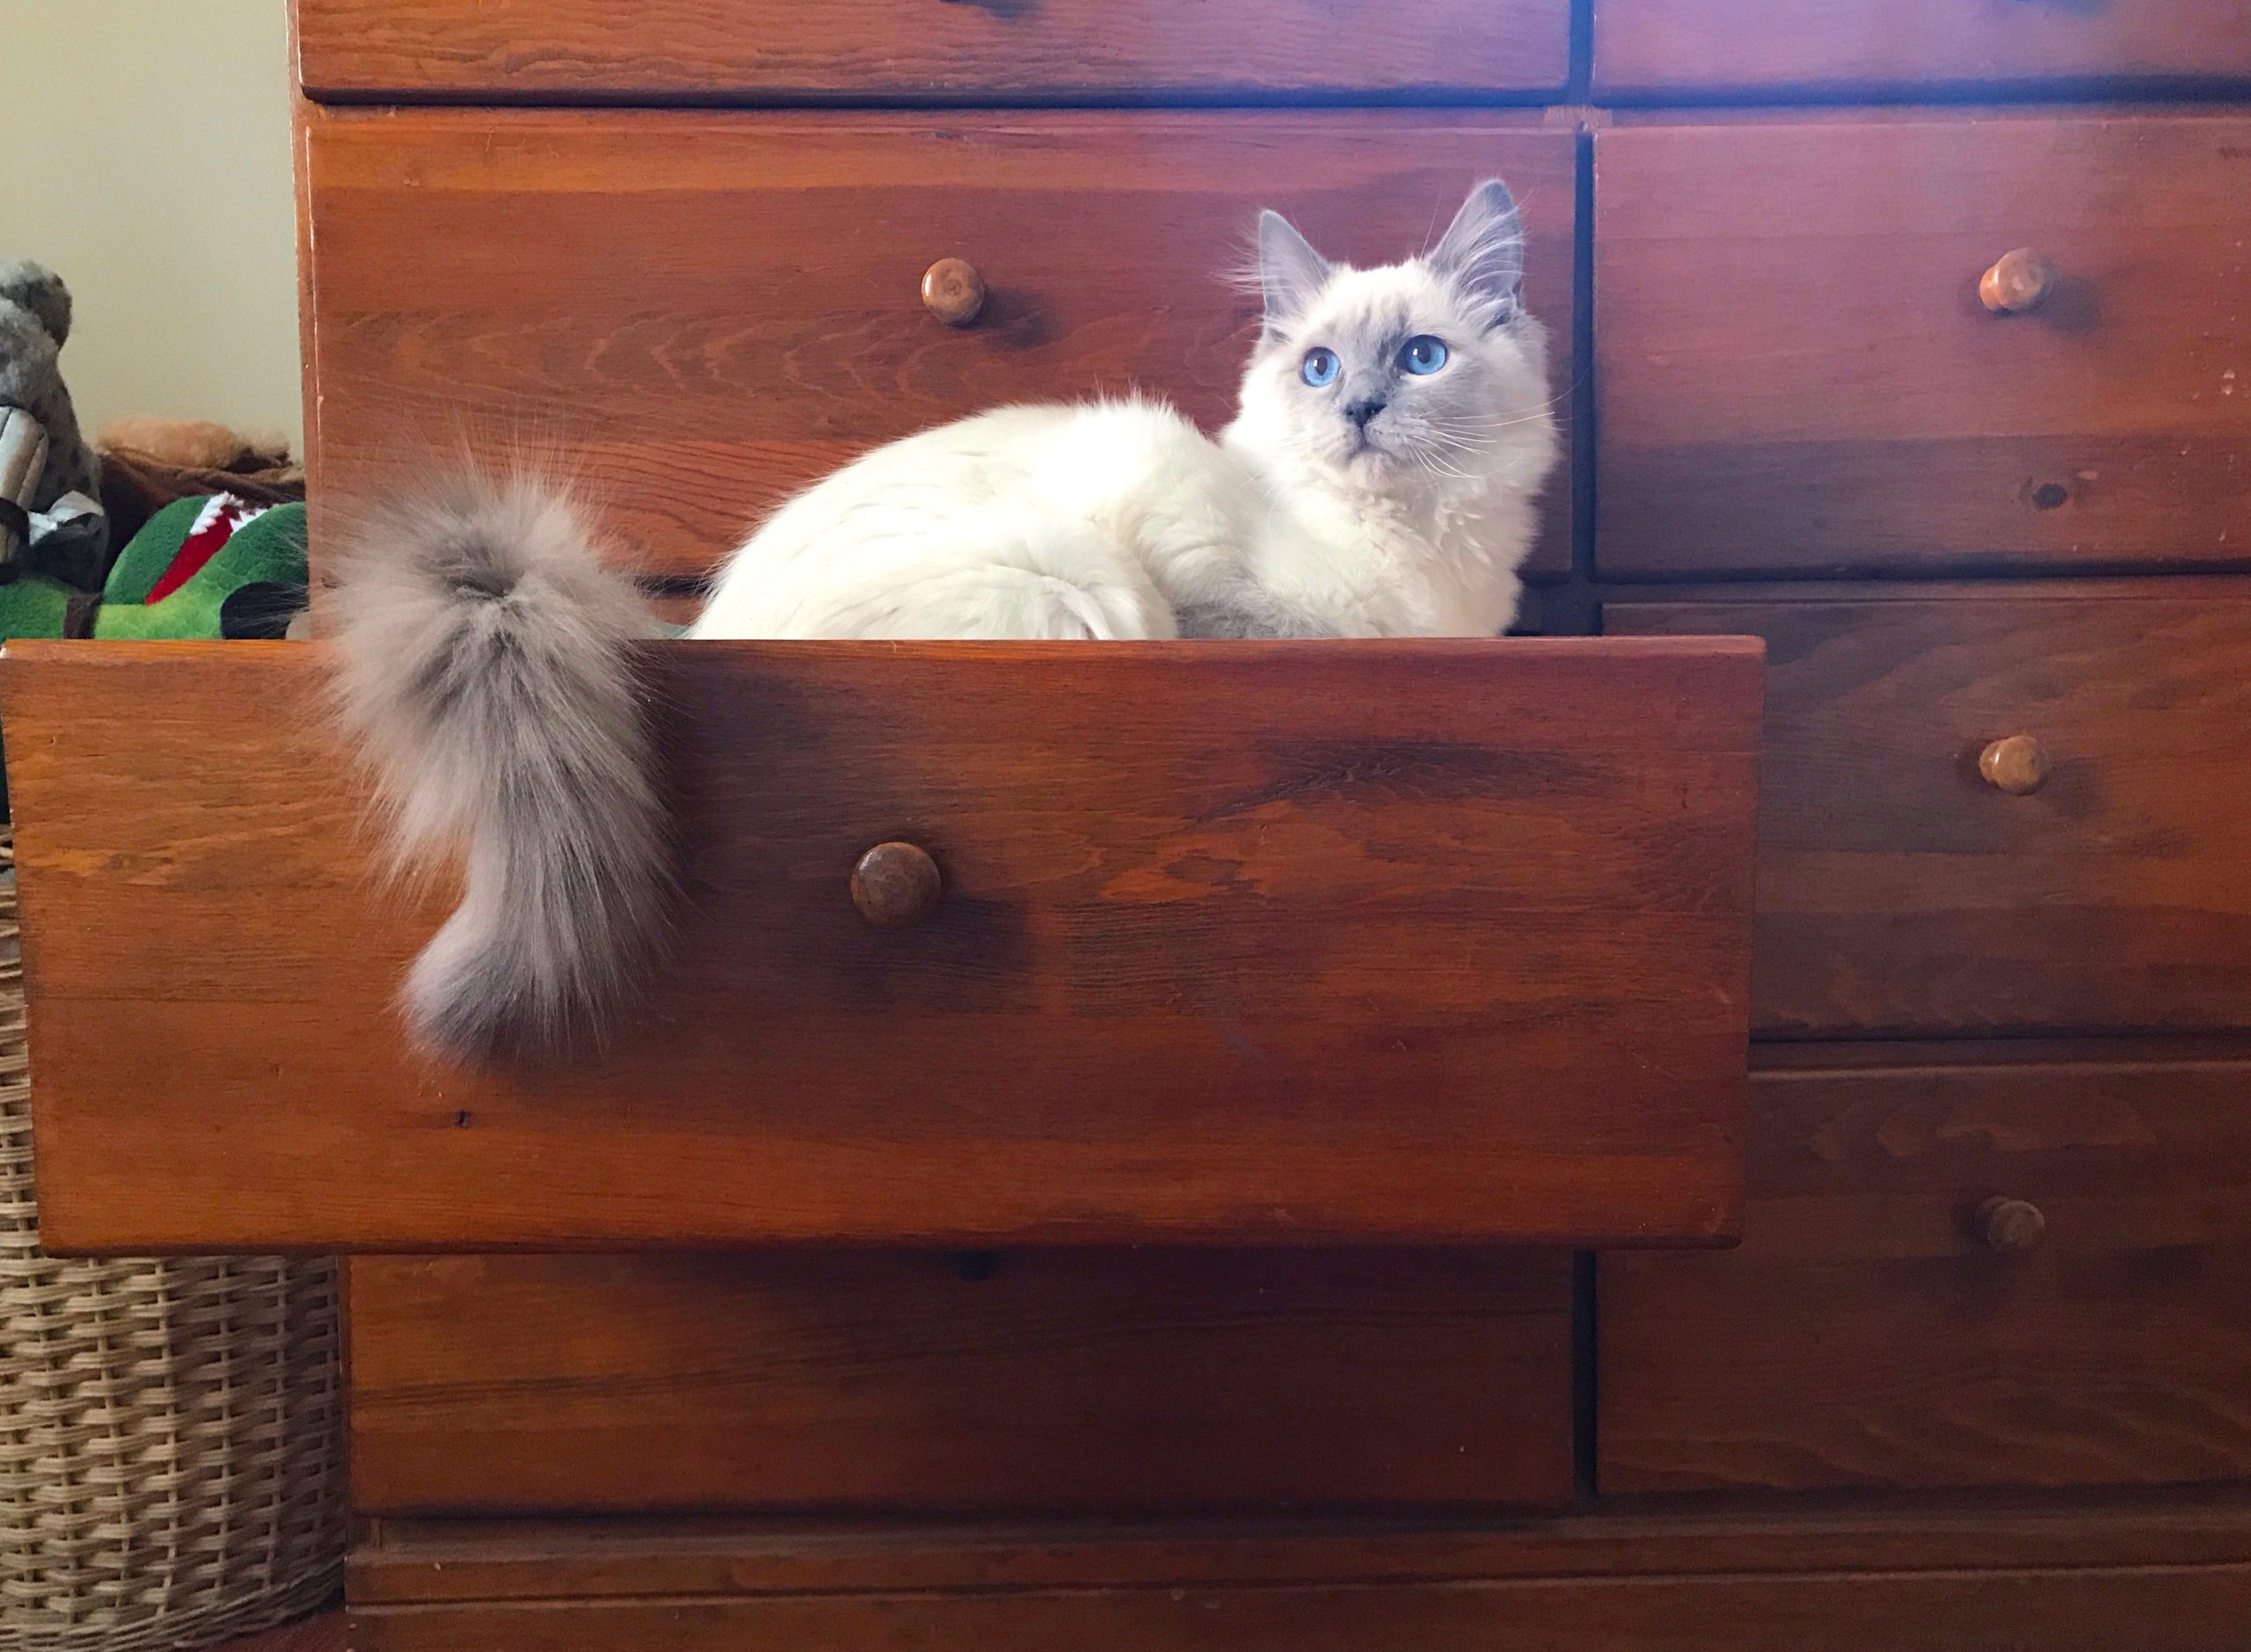 White Ragdoll Kitten in a Dresser Drawer